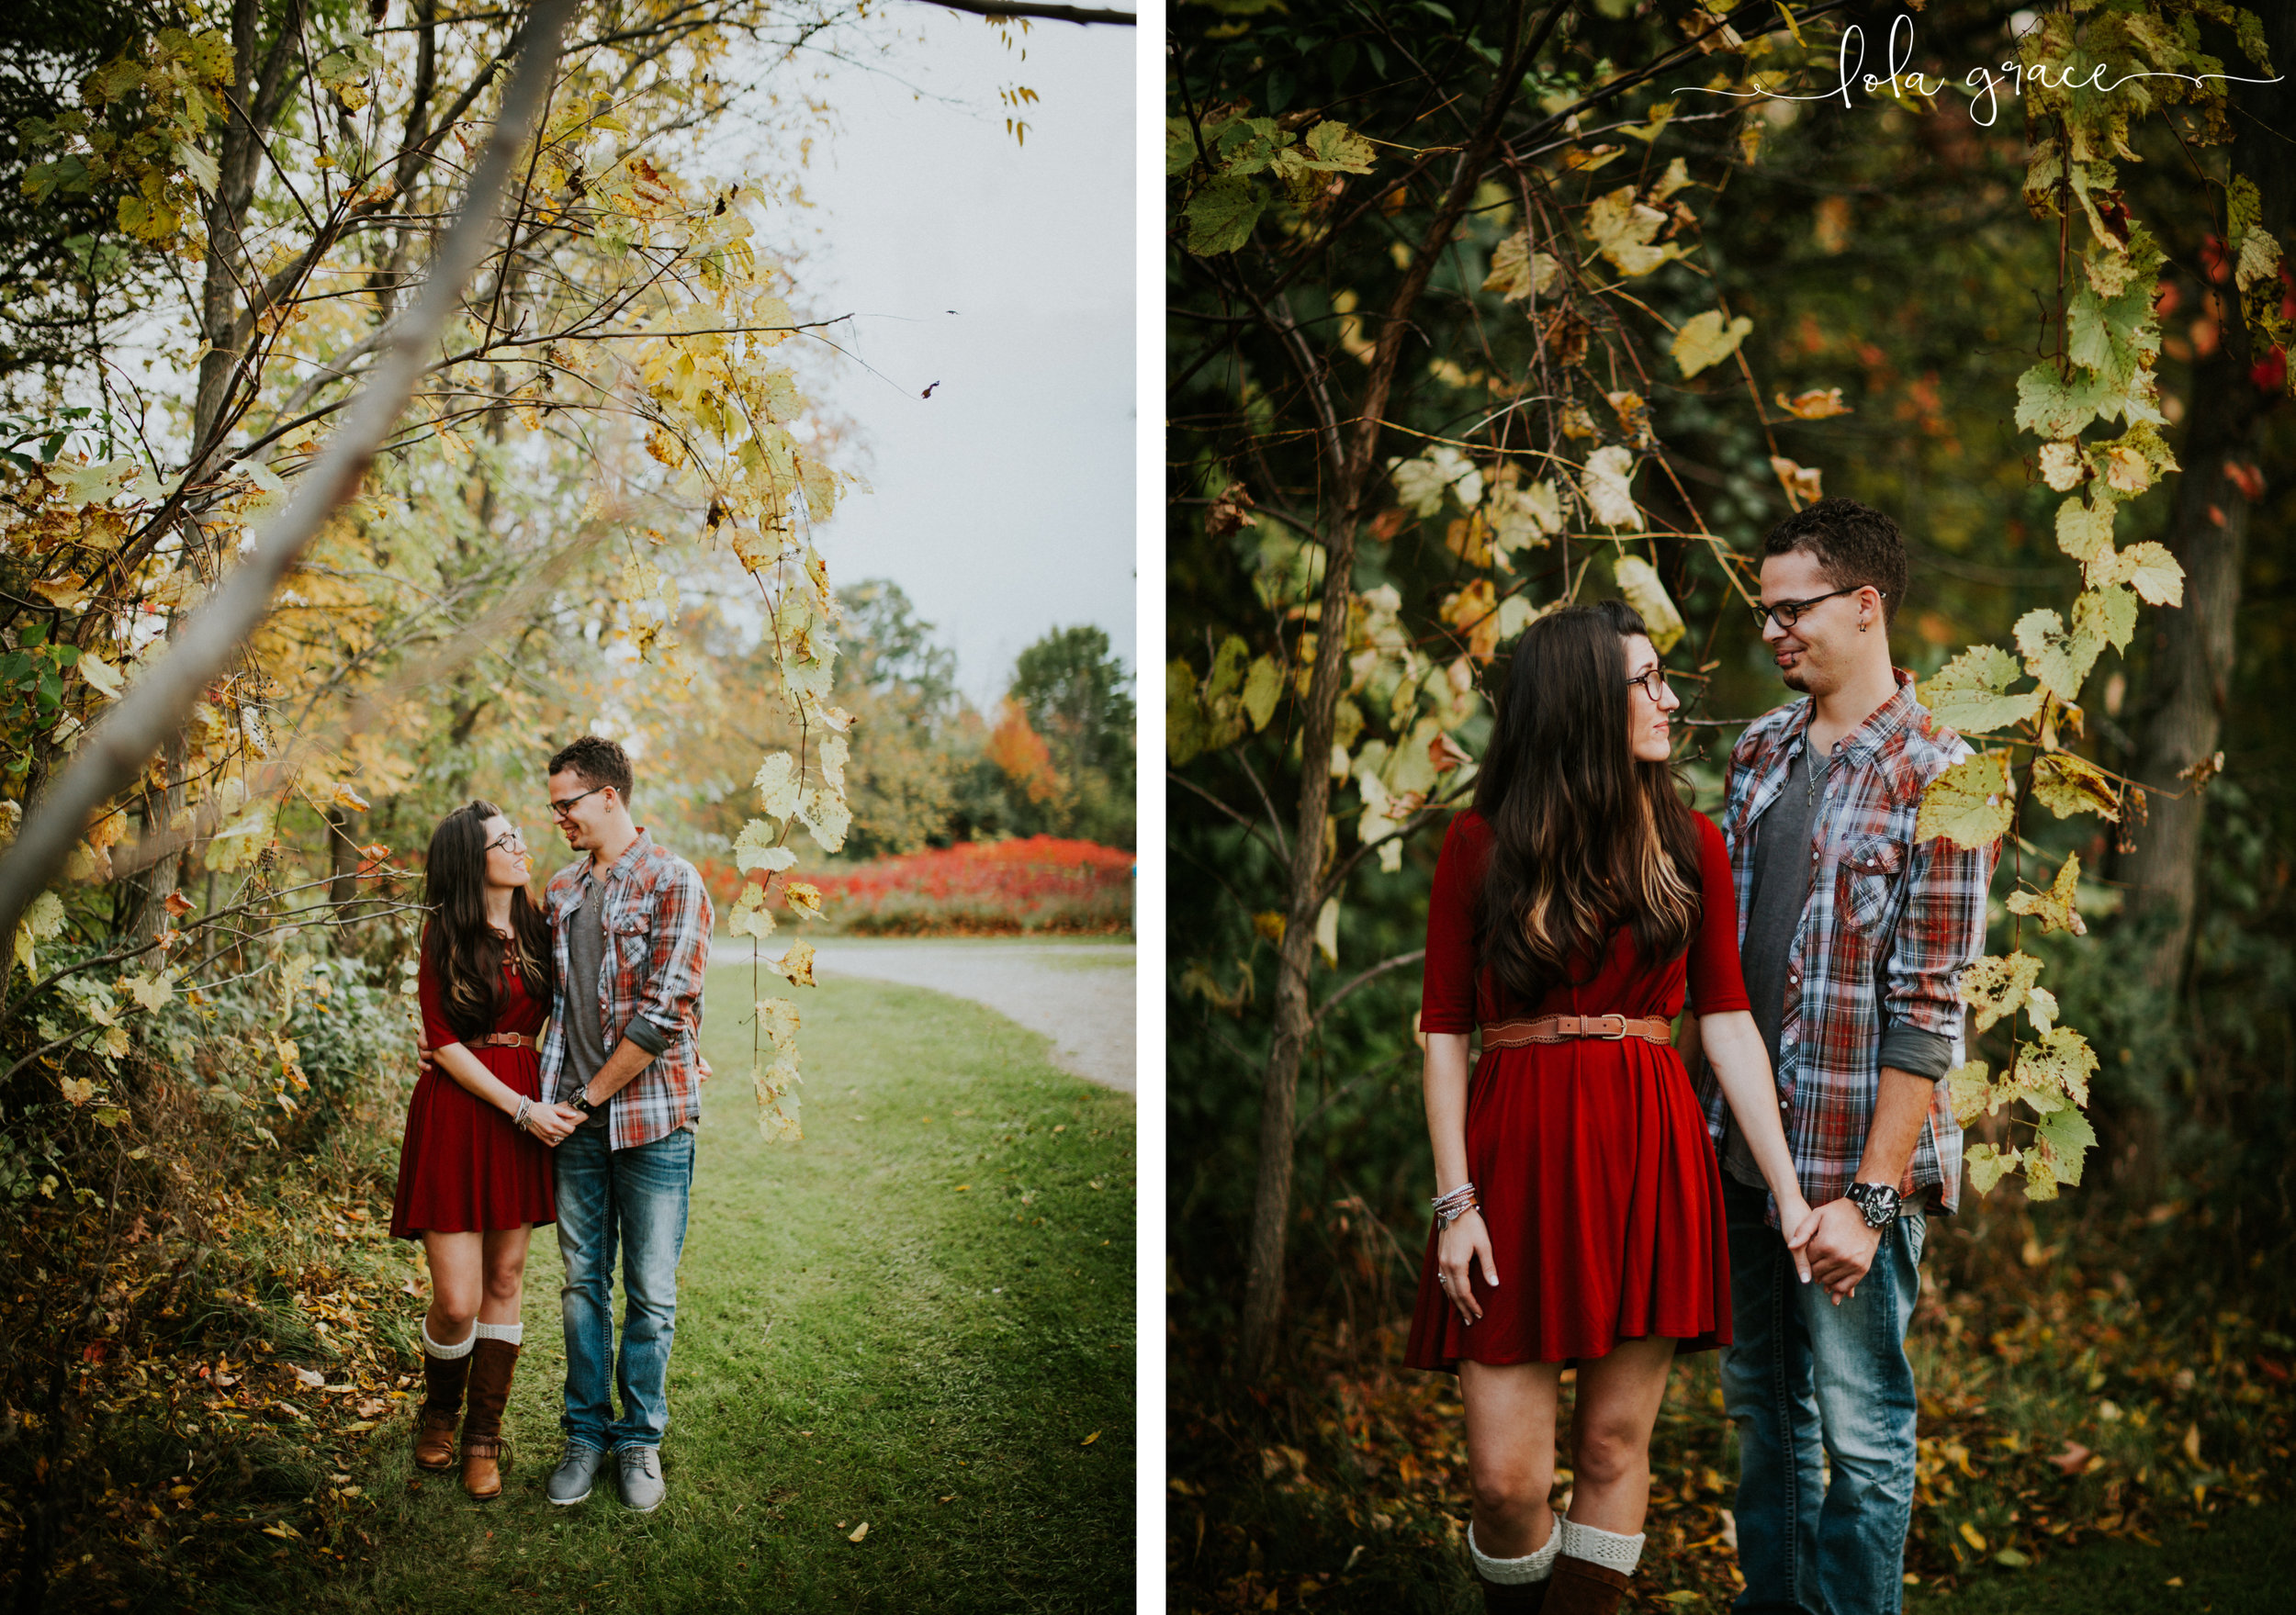 lola-grace-photography-chelsea-jesse-engagement-photos-20.jpg